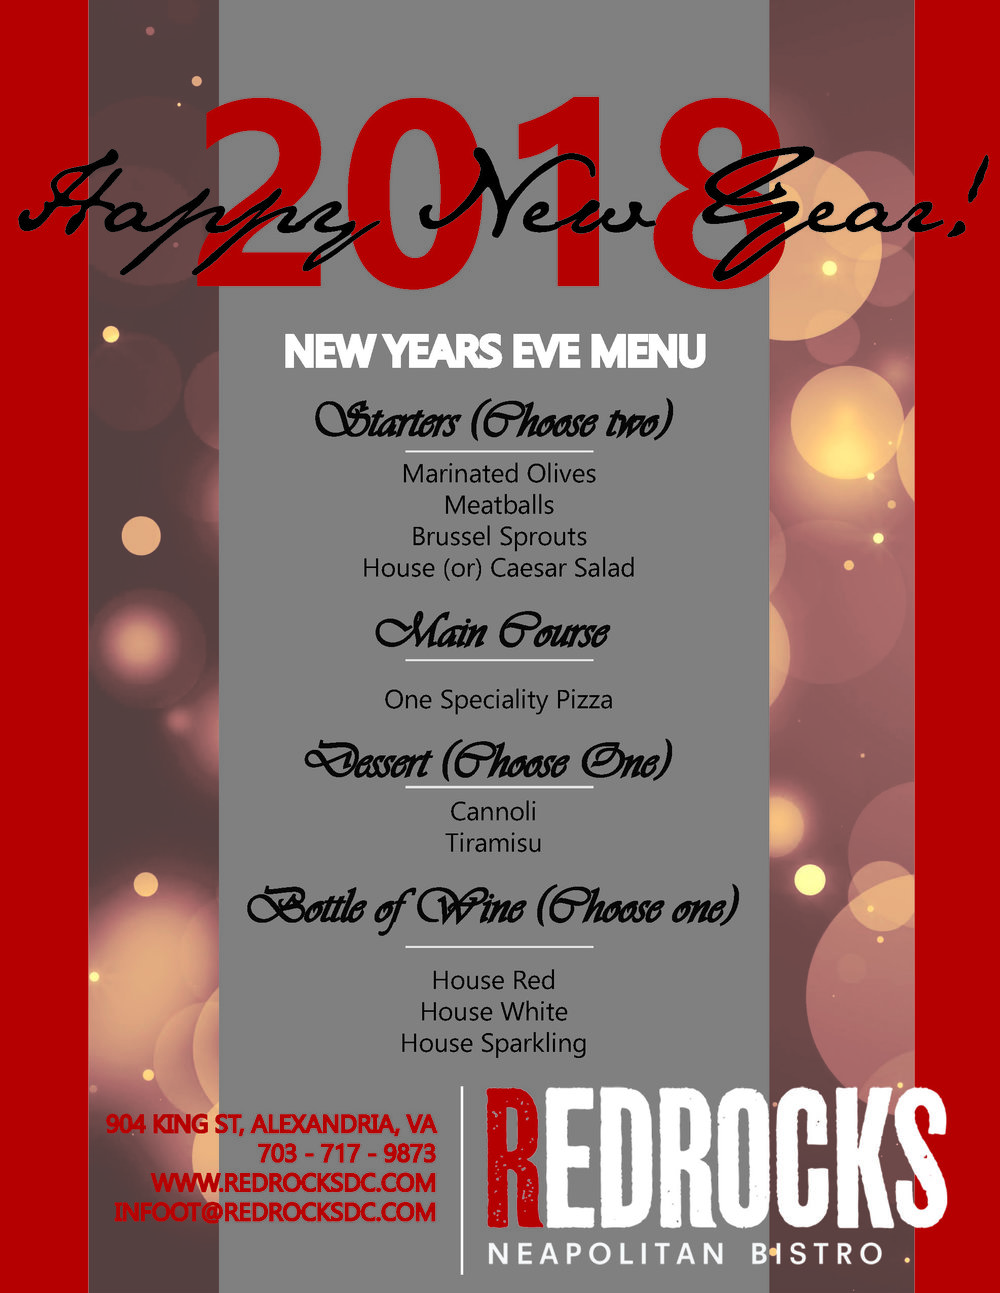 BRING IN THE NEW YEAR WITH REDROCKS PIZZA. - We are offering a $50 pre fixe dinner for two. Make RedRocks part of your first night celebrations in Old Town.